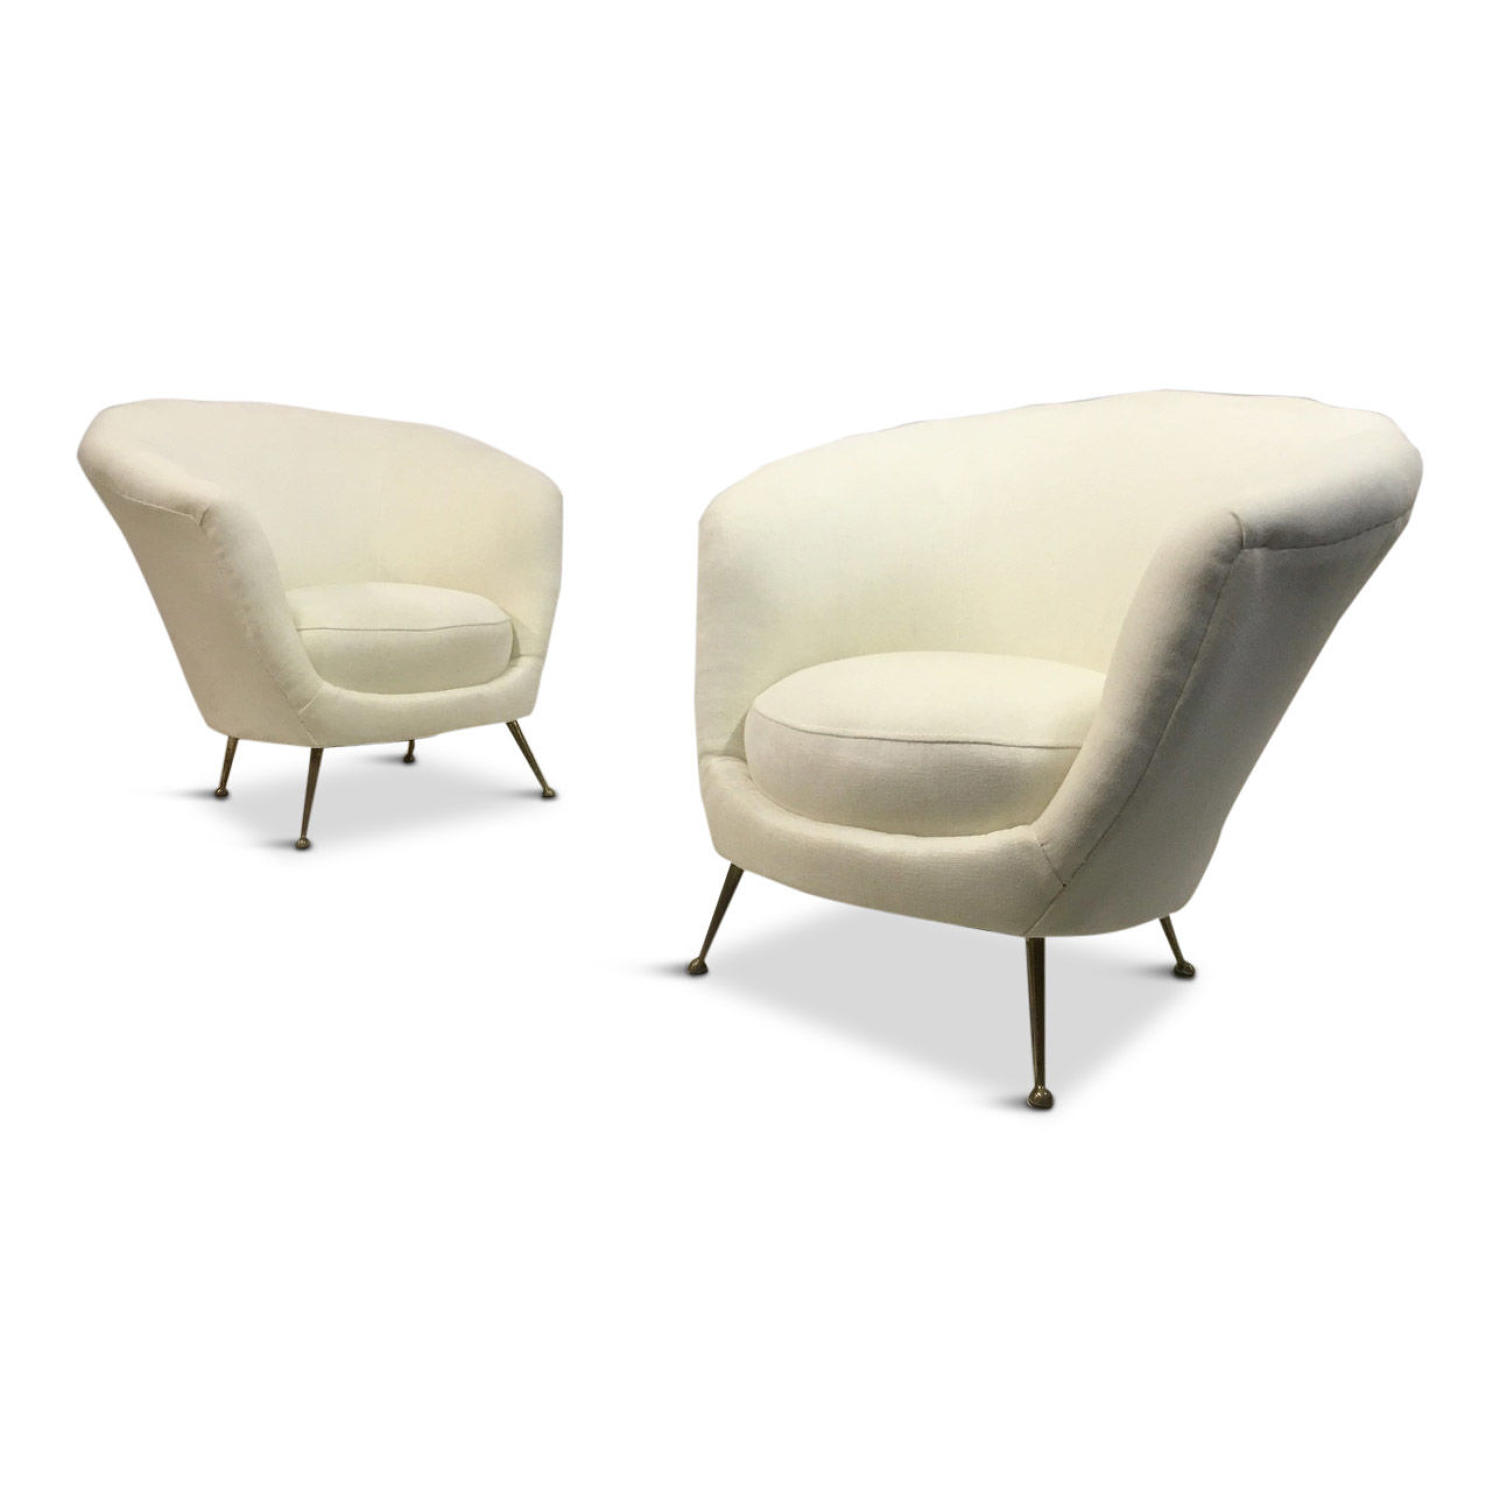 A pair of 1950s Italian armchairs on brass legs